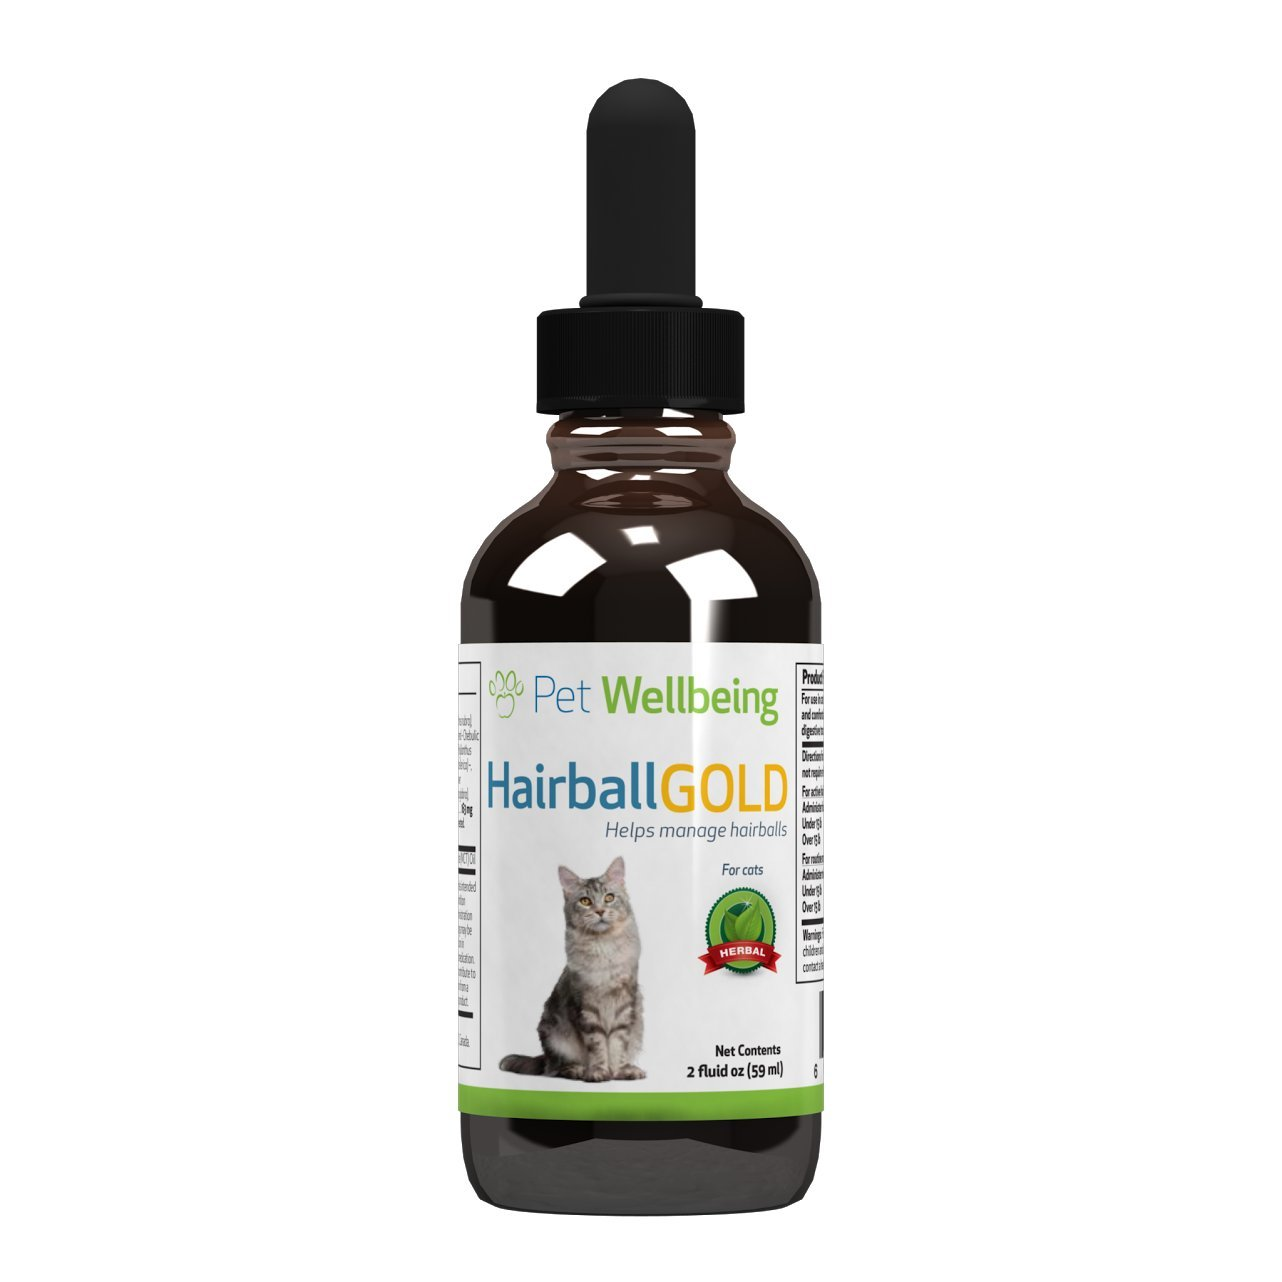 Pet Wellbeing - Hairball Gold for Cats - Natural Hairball Management for Cats - 2oz (59ml)